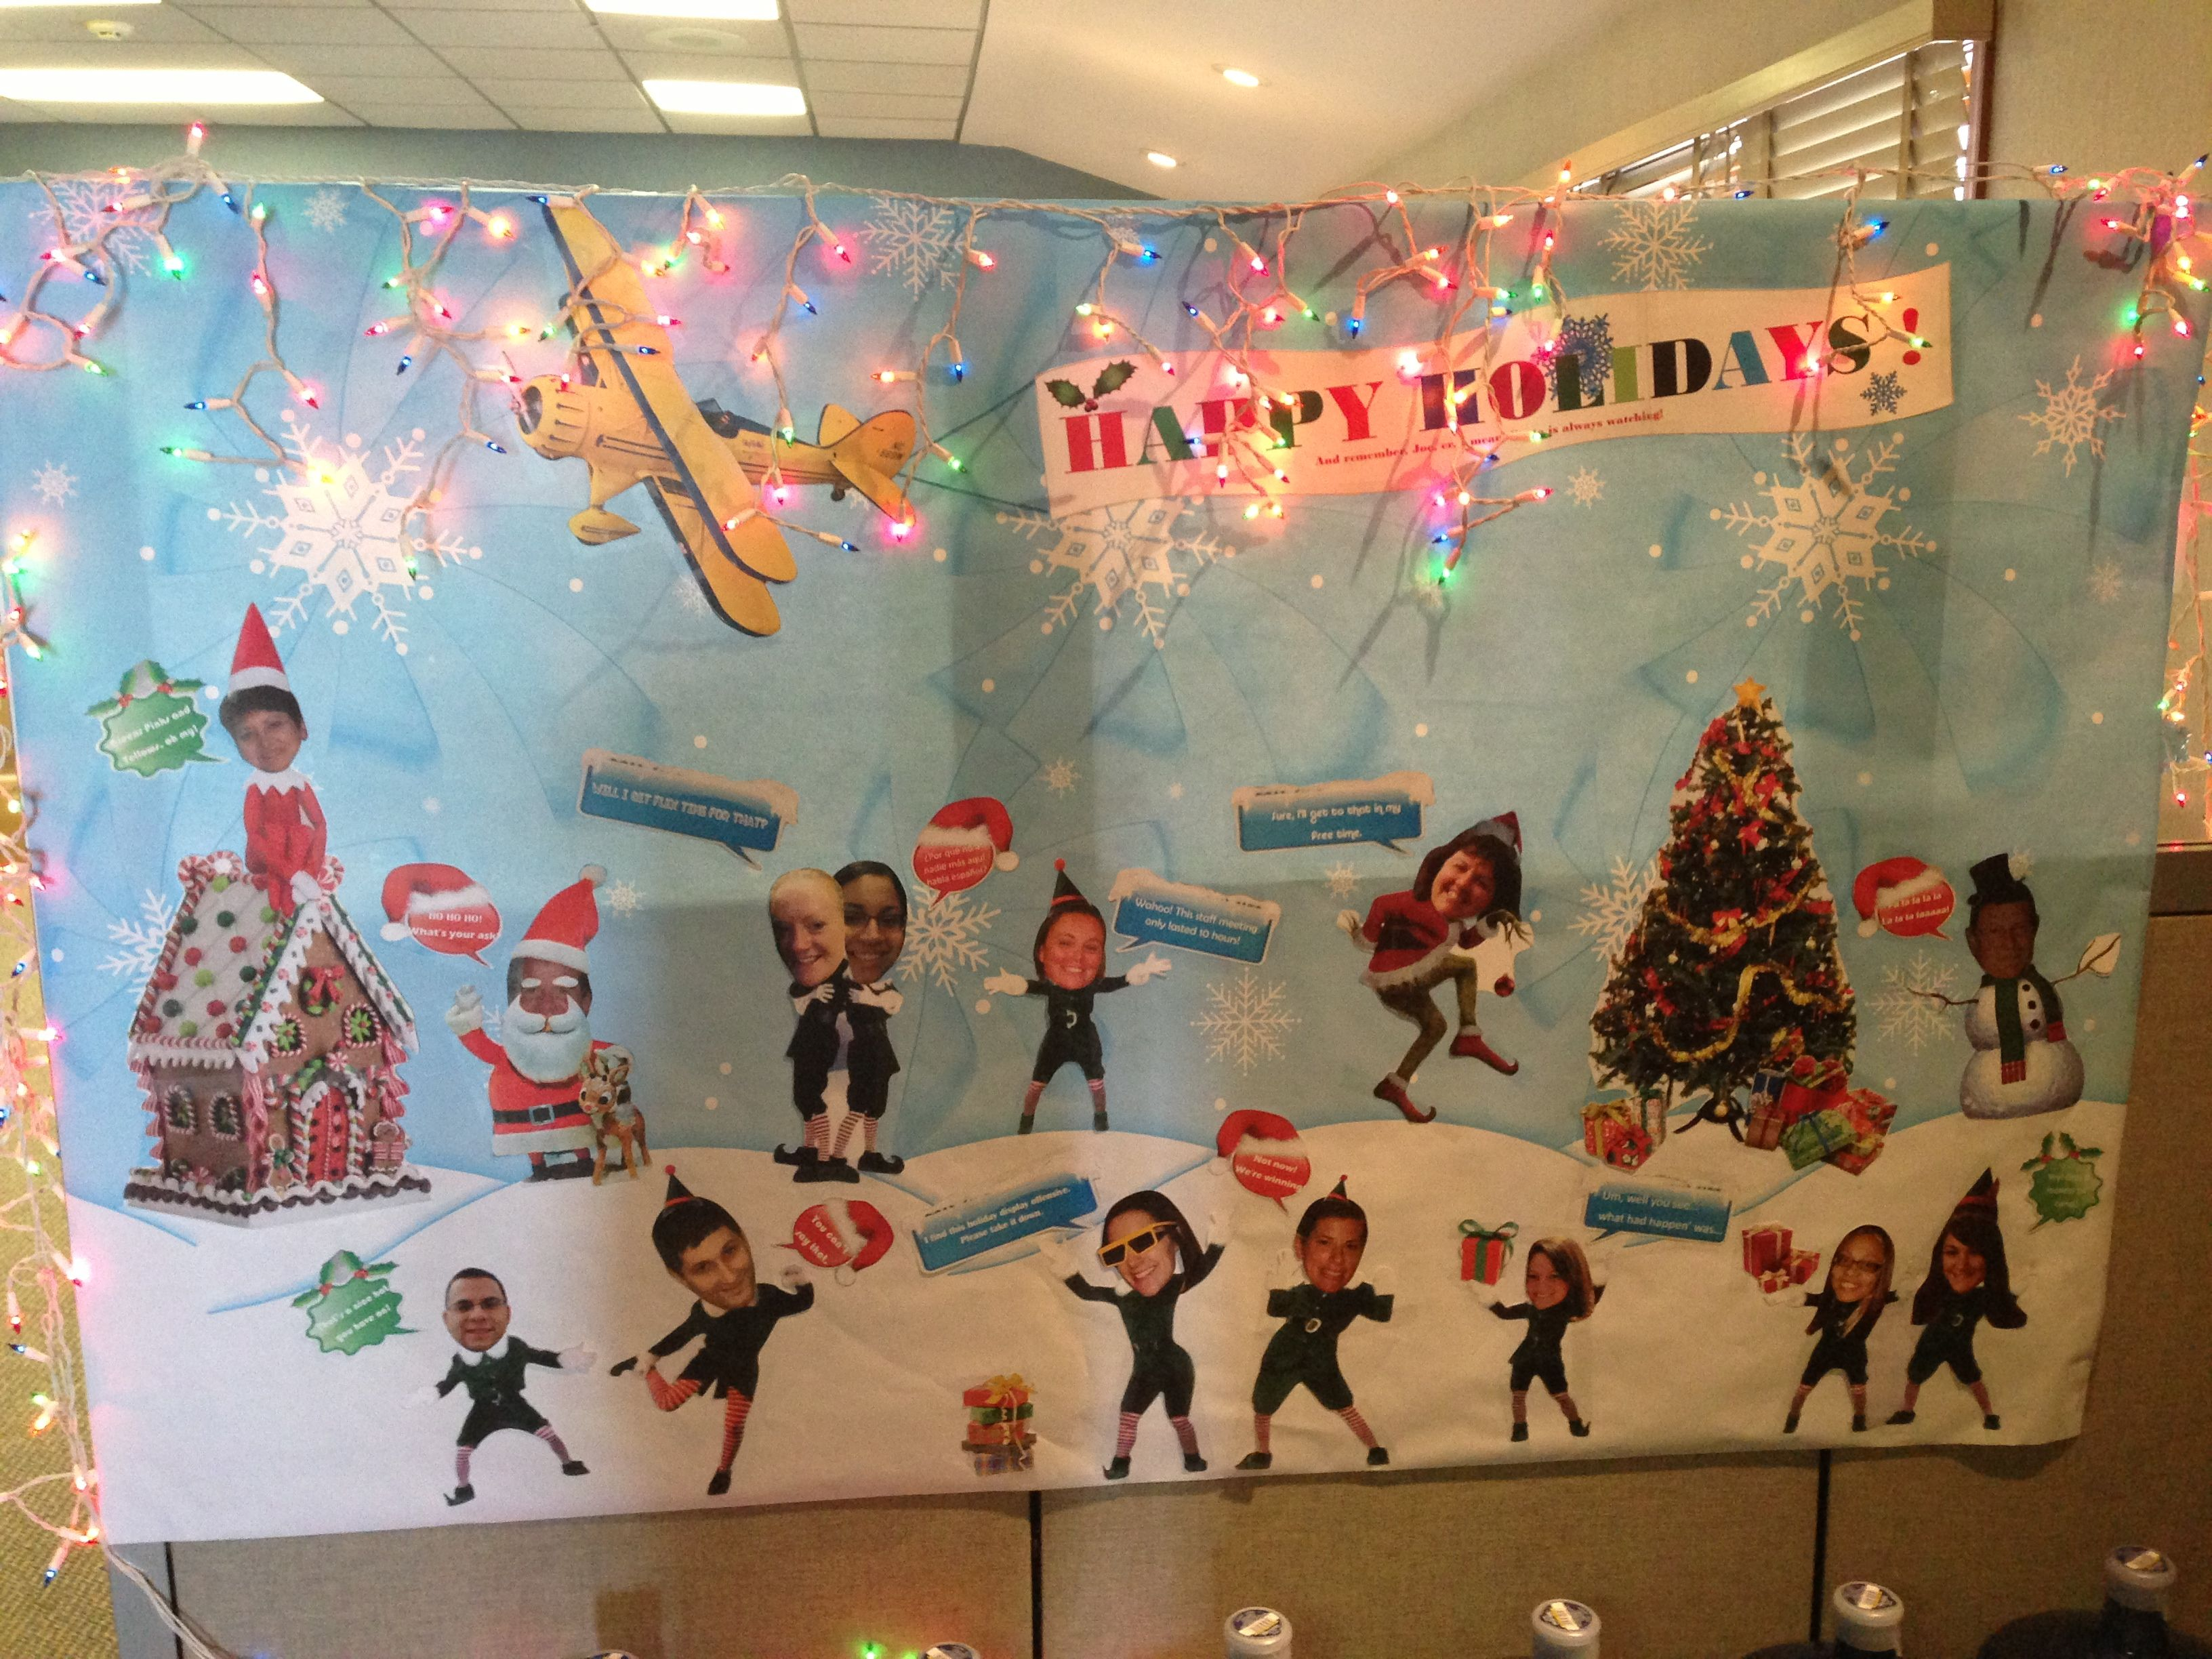 Cubicle office mural holiday decoration